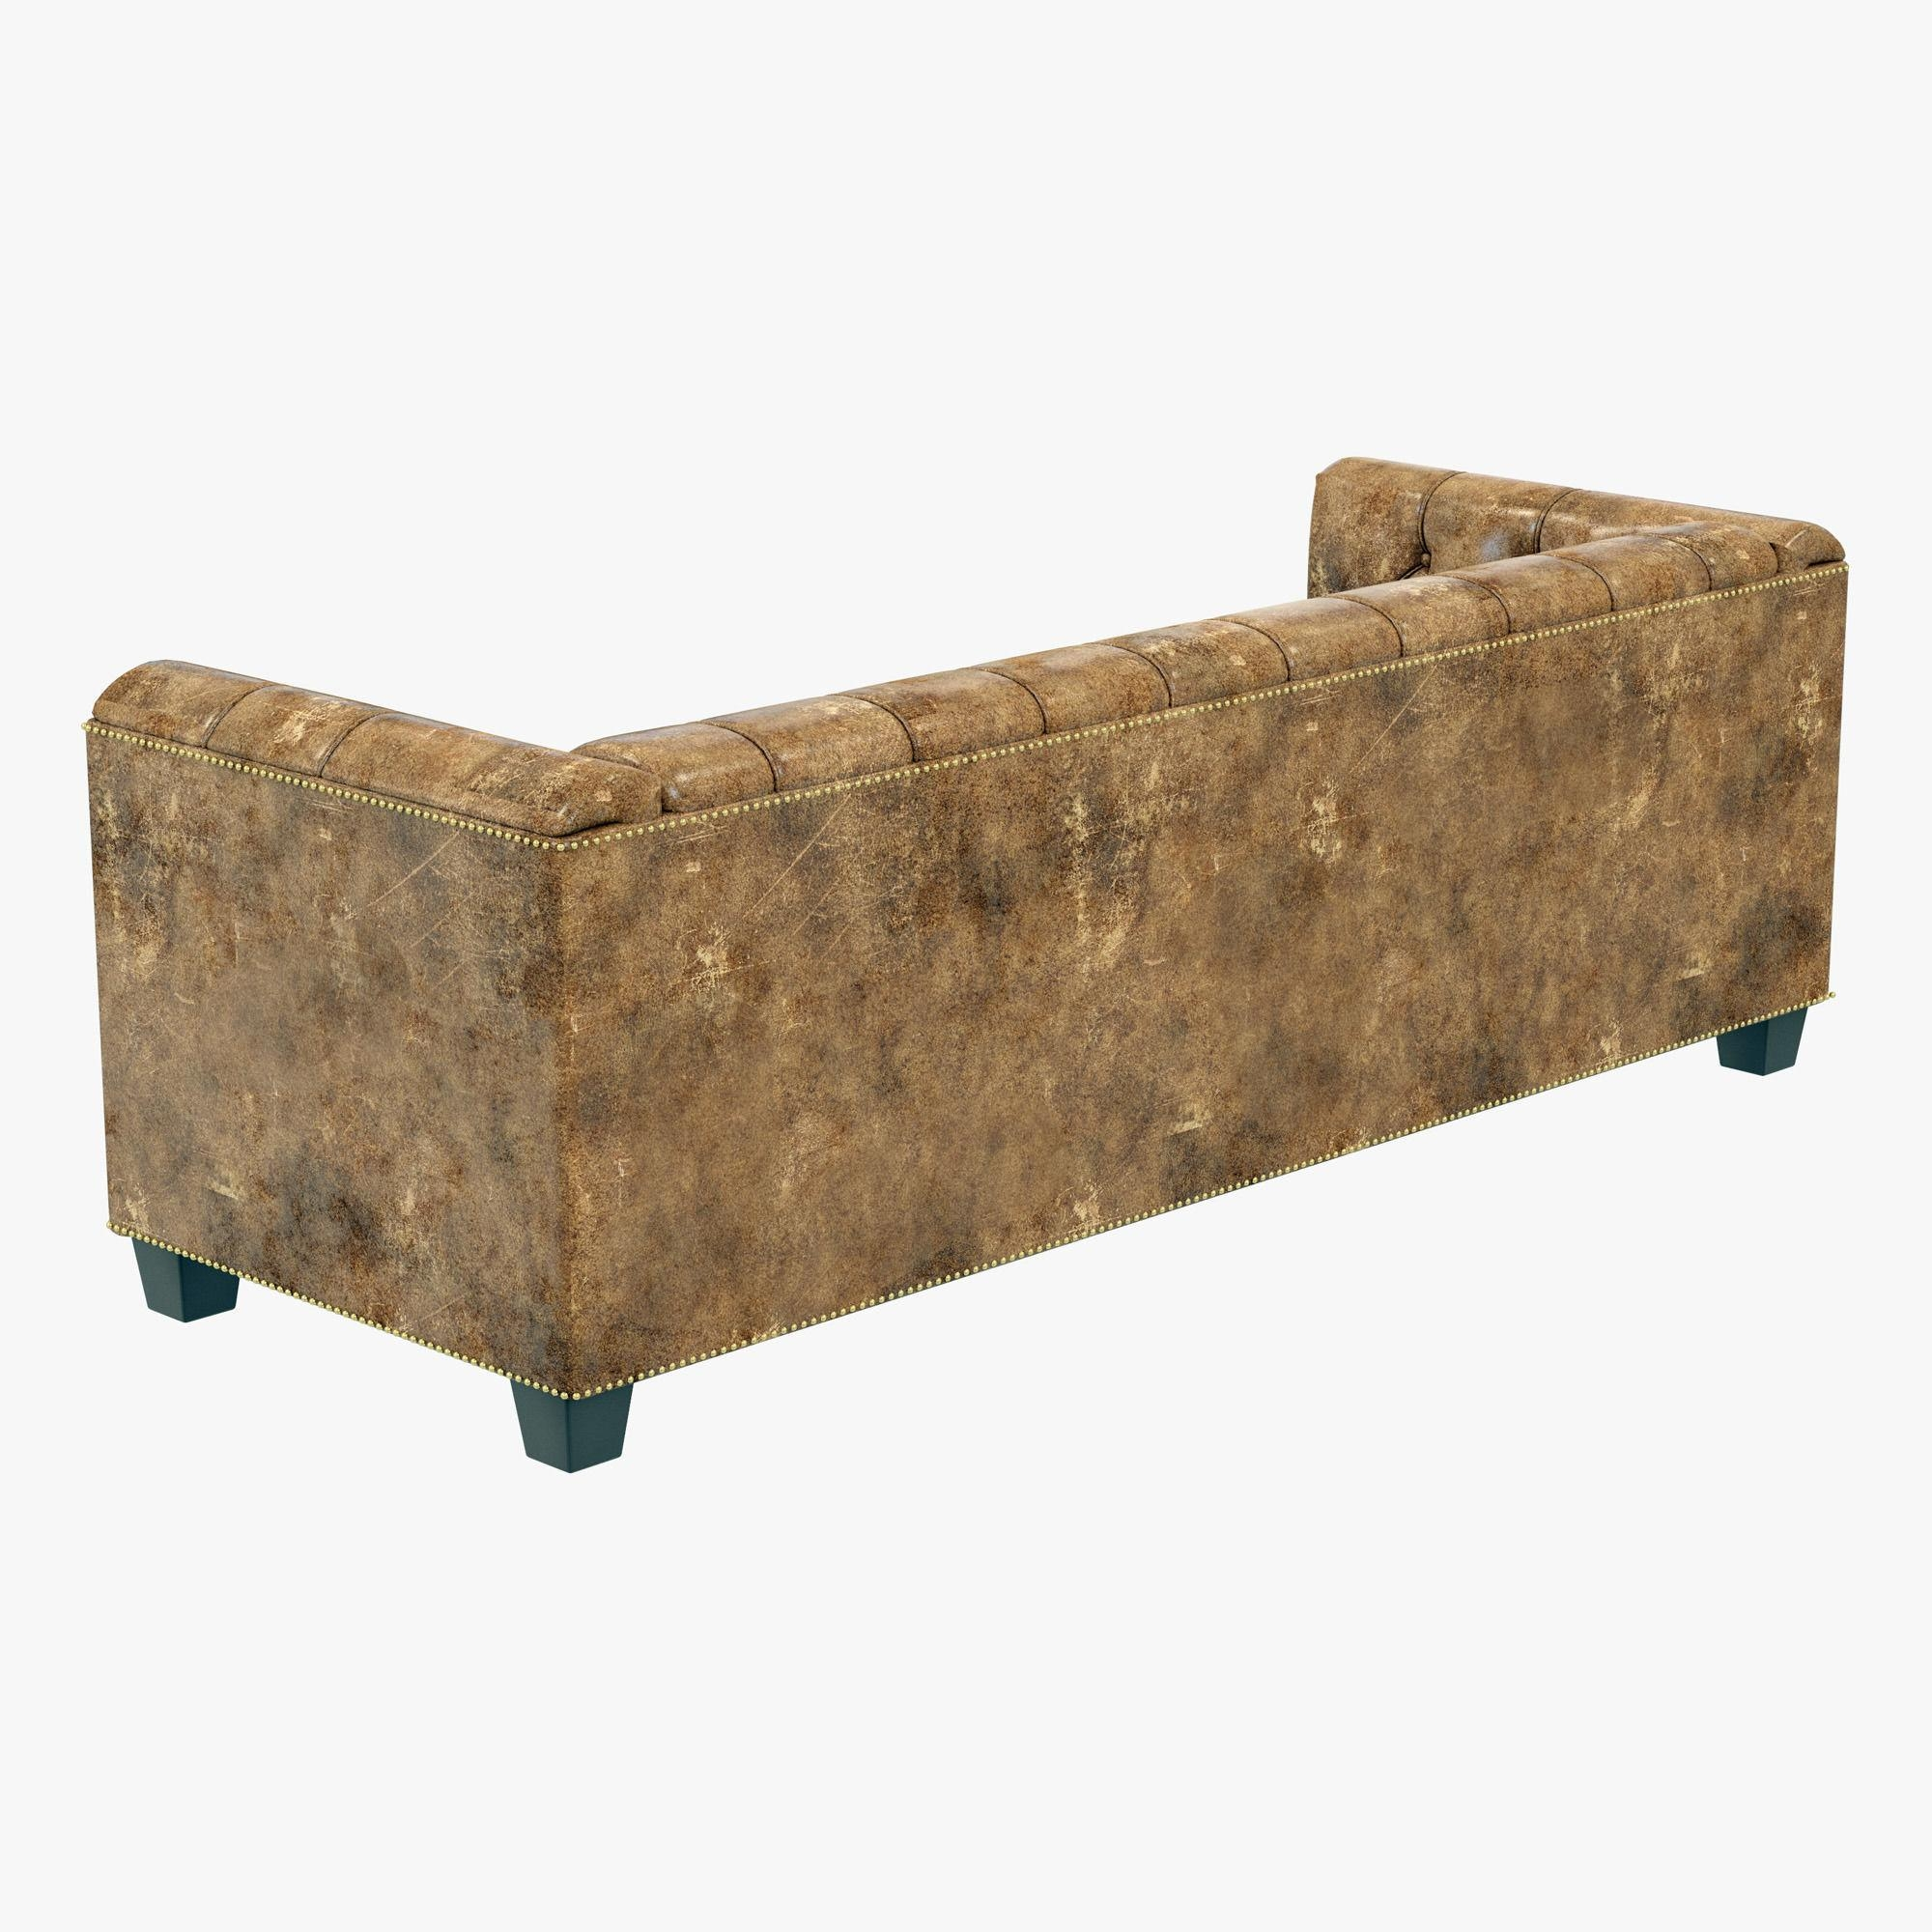 Restoration Hardware Savoy Leather Sofa 3D Model With Regard To Savoy Leather Sofas (View 10 of 20)